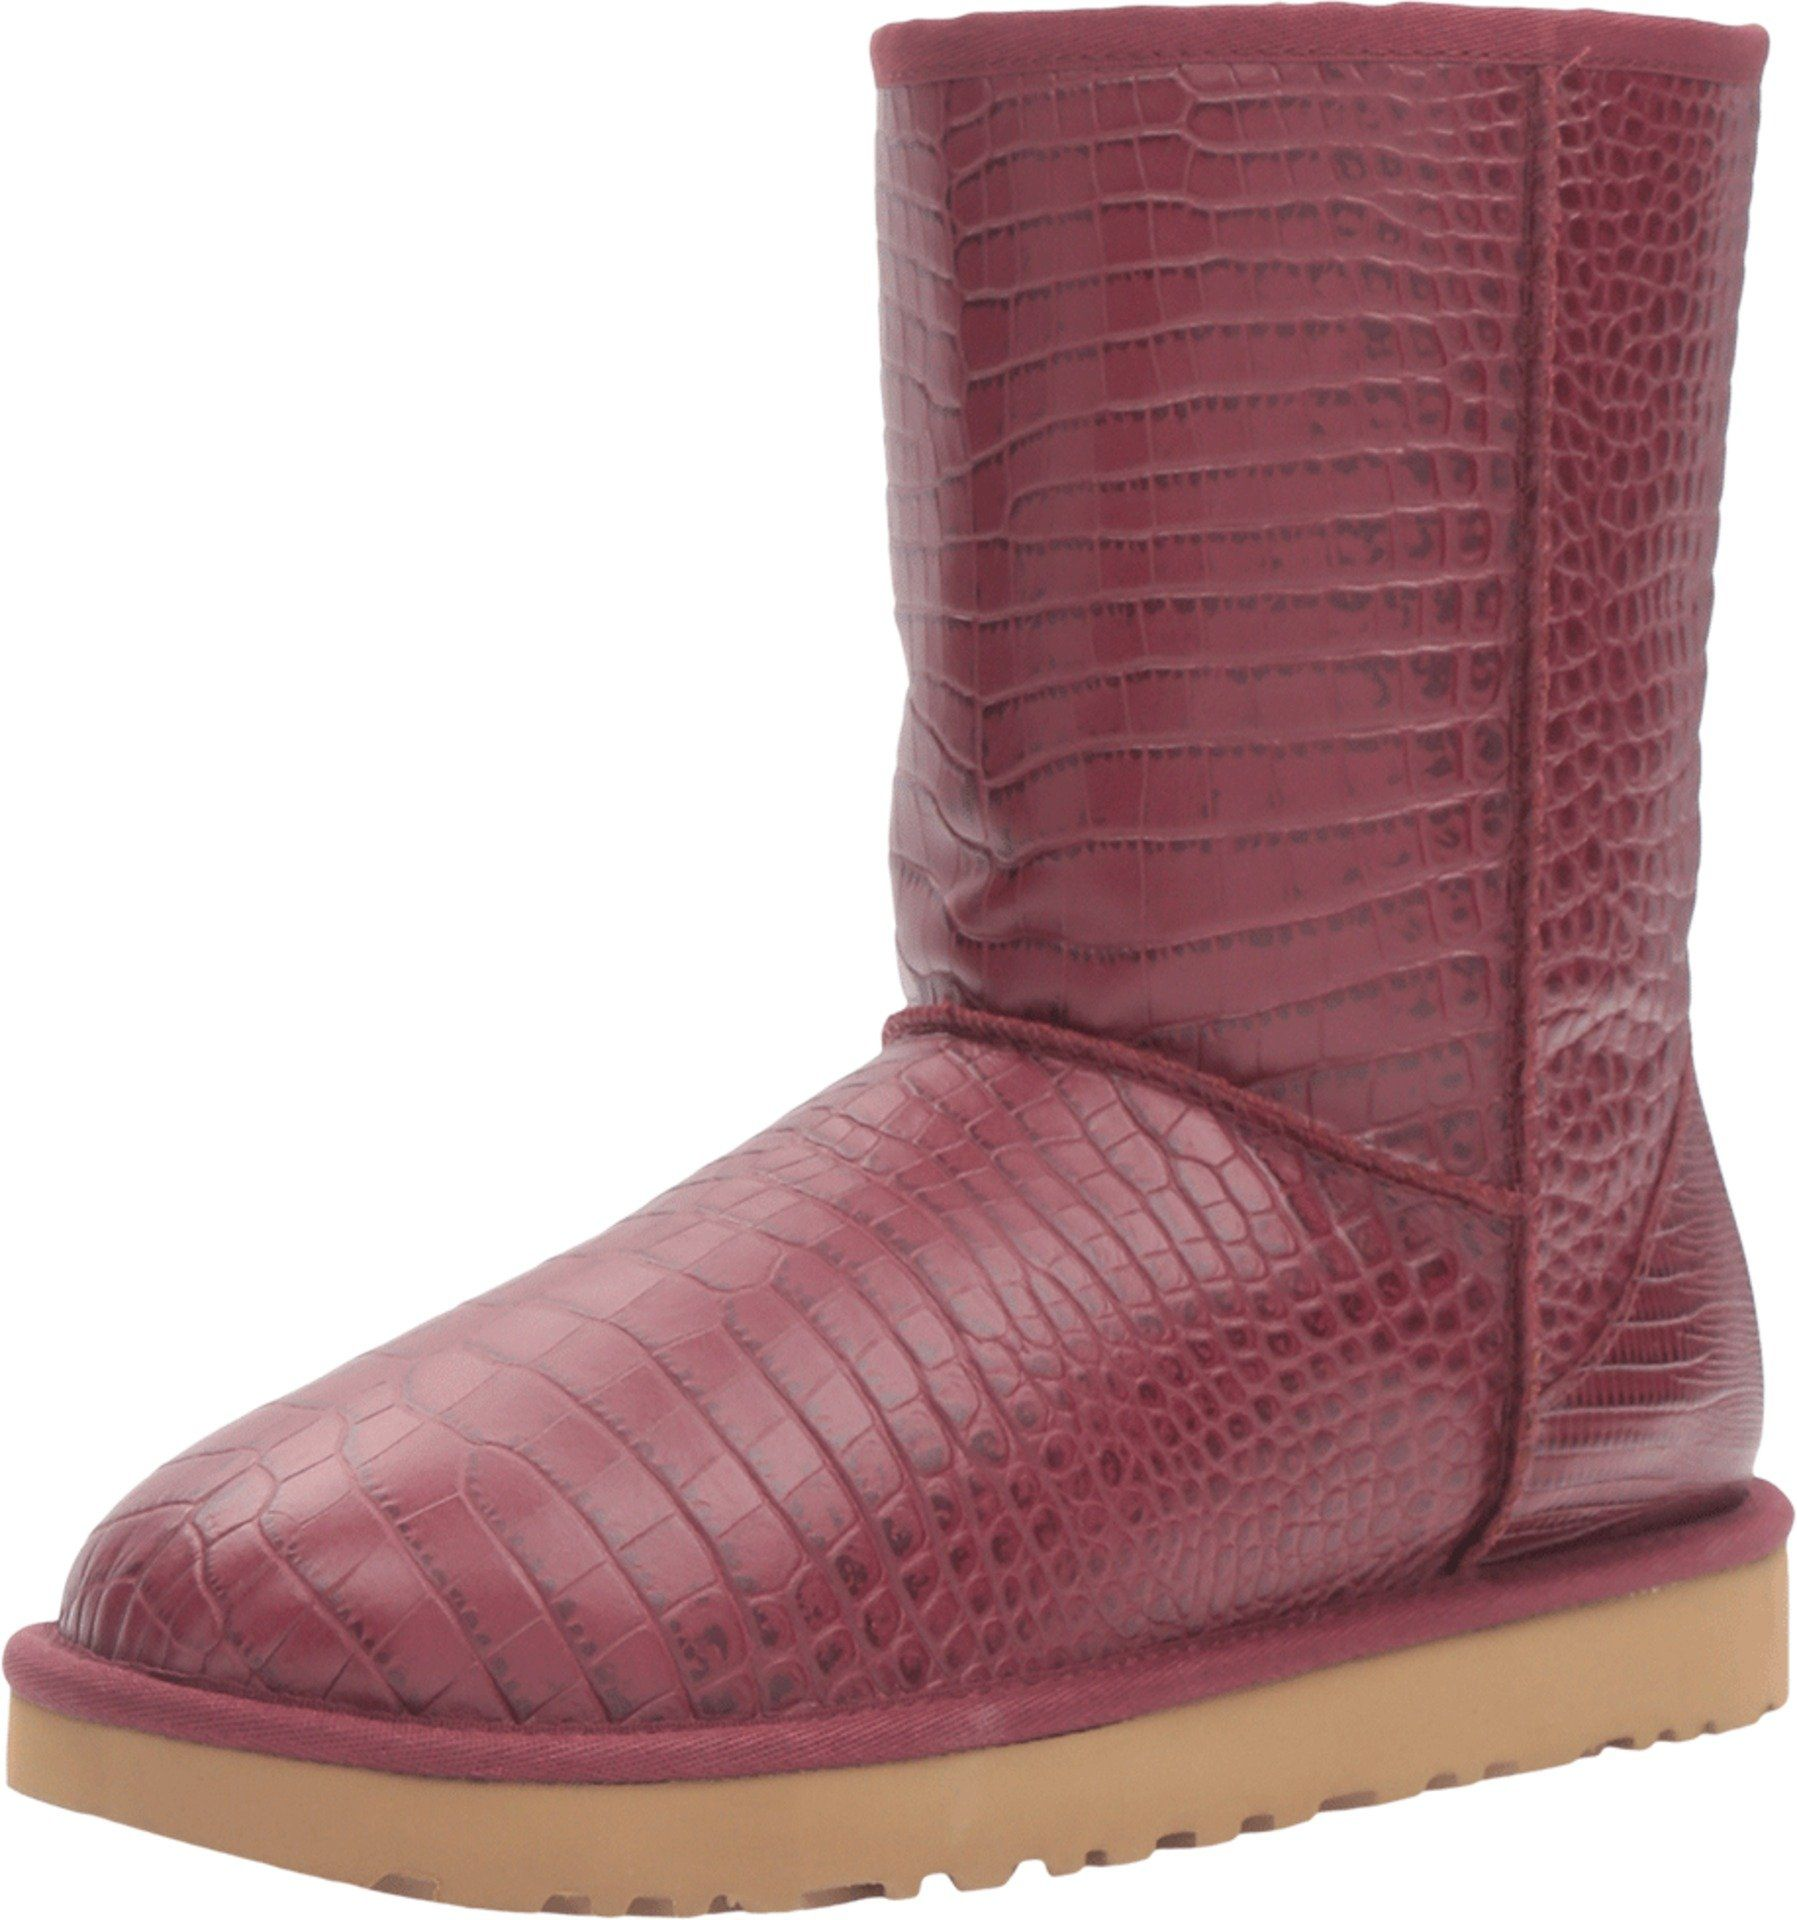 ugg women s classic short croco lonely hearts boot 6 b m shoes rh pinterest com